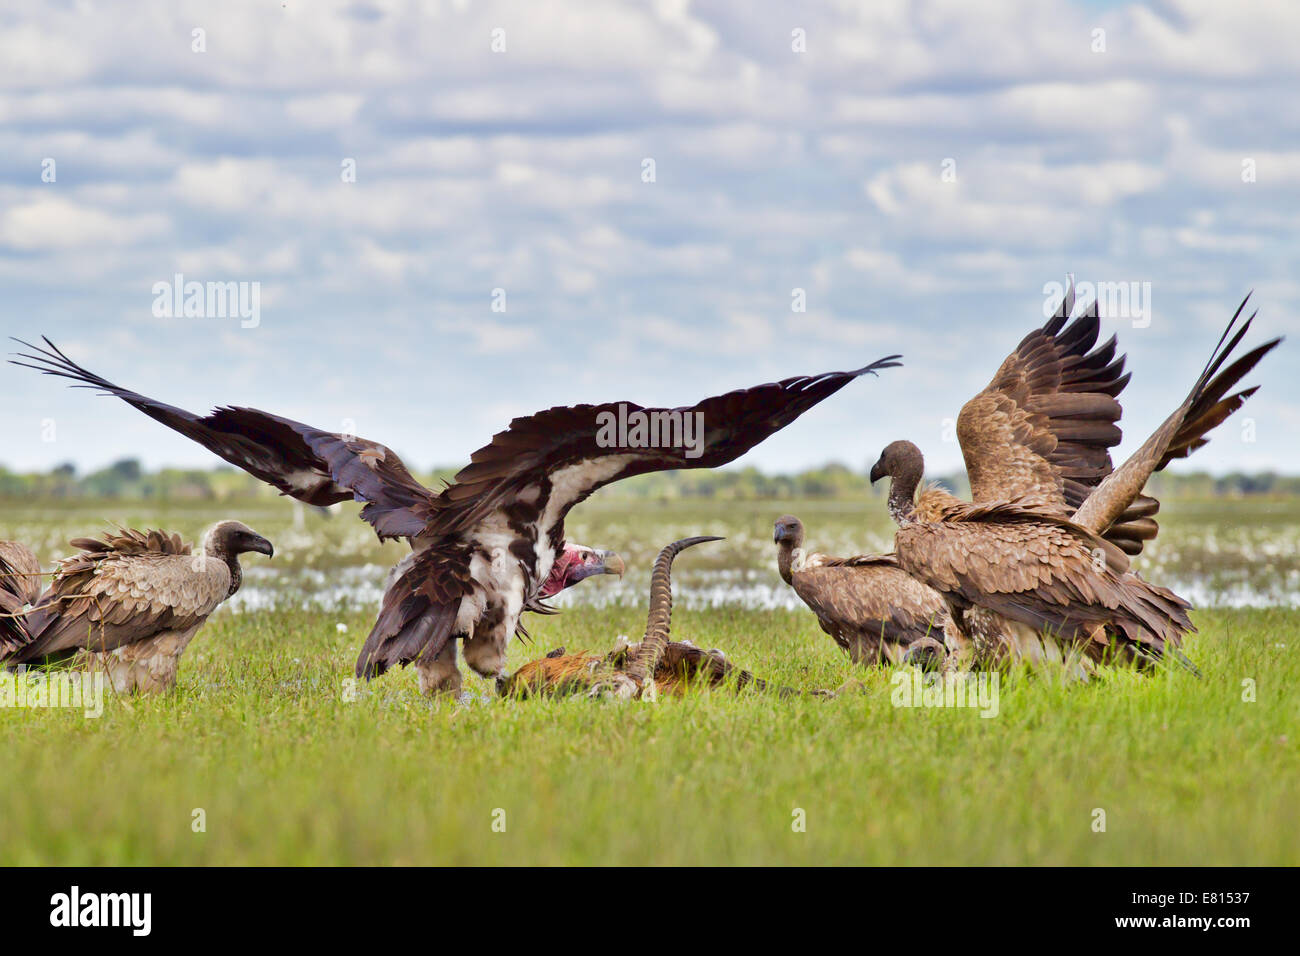 Two species of vultures fight over a black lechwe carcass in the flooded grasslands of Bangweulu Wetlands - Stock Image